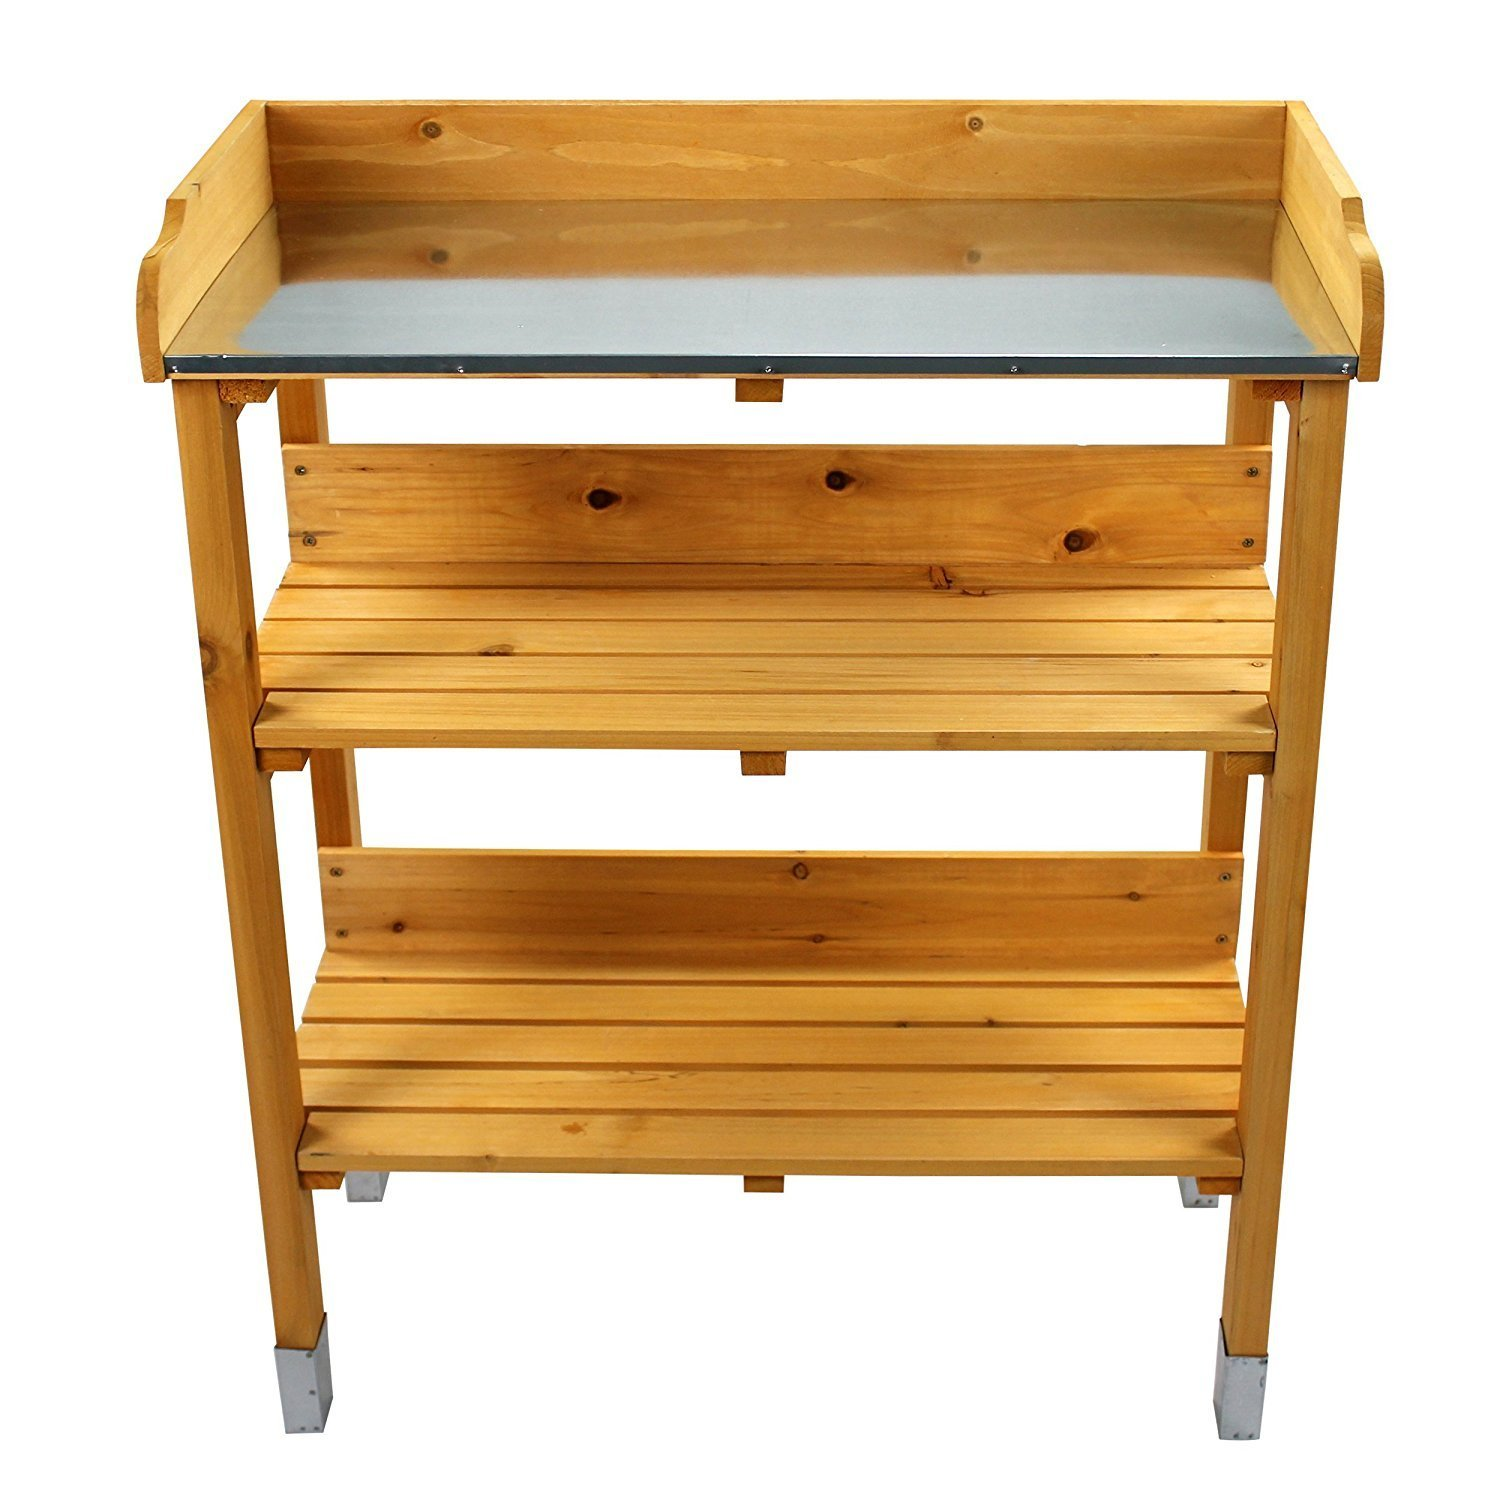 Potting Benches Potting Bench And Patio Organized Clutter 19 Ebay Potting Bench Convertible